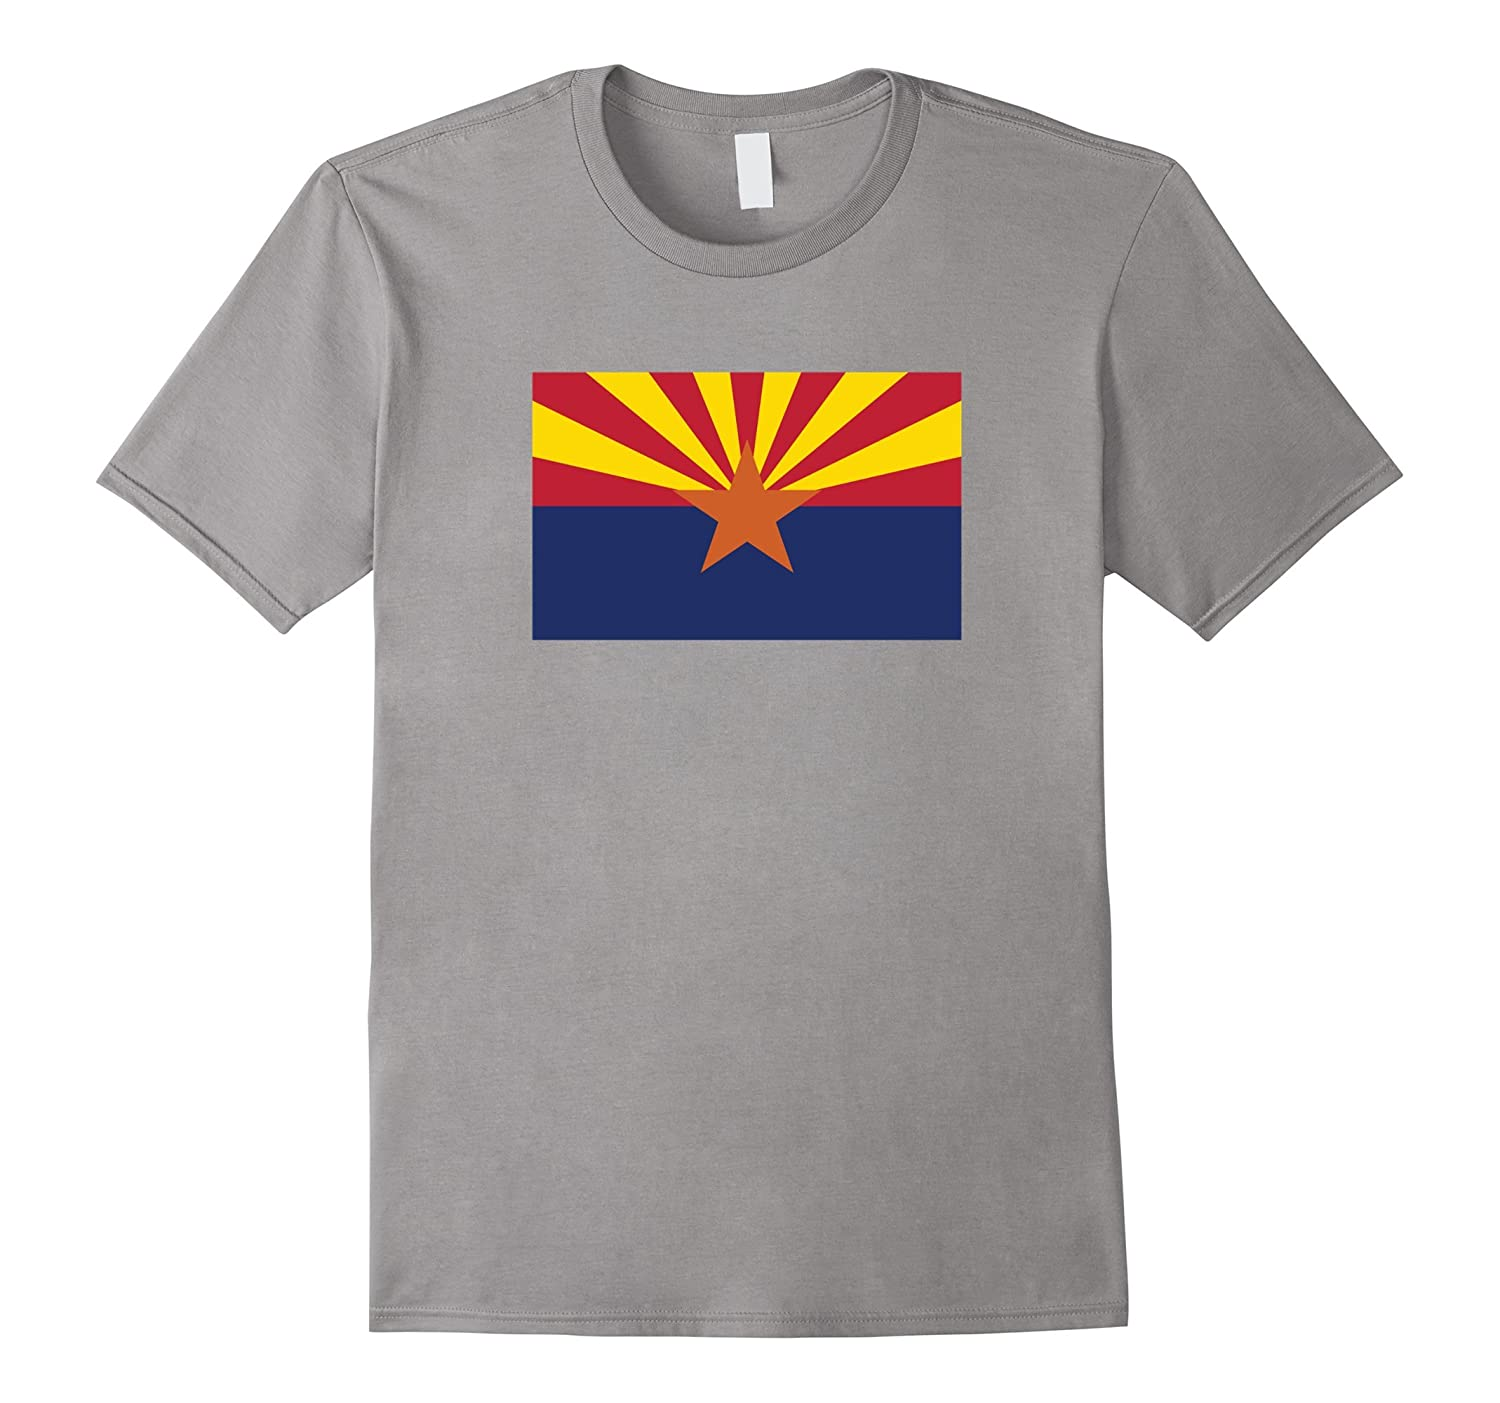 Arizona State Flag T-Shirt - Arizona Pride Tee AZ-BN